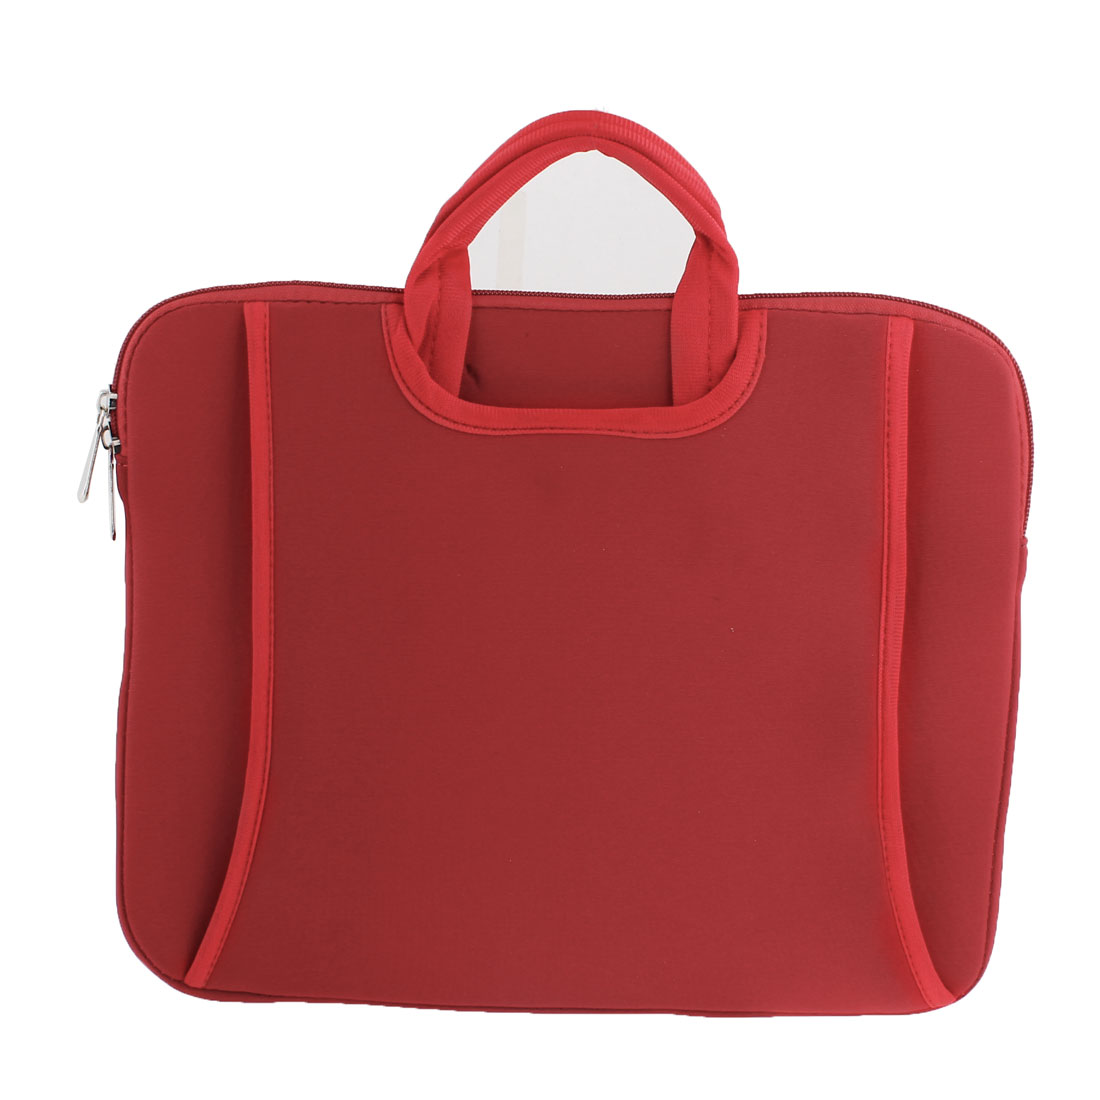 "15"" 3 Compartments Laptop Sleeve Bag Pouch Red w Handle"